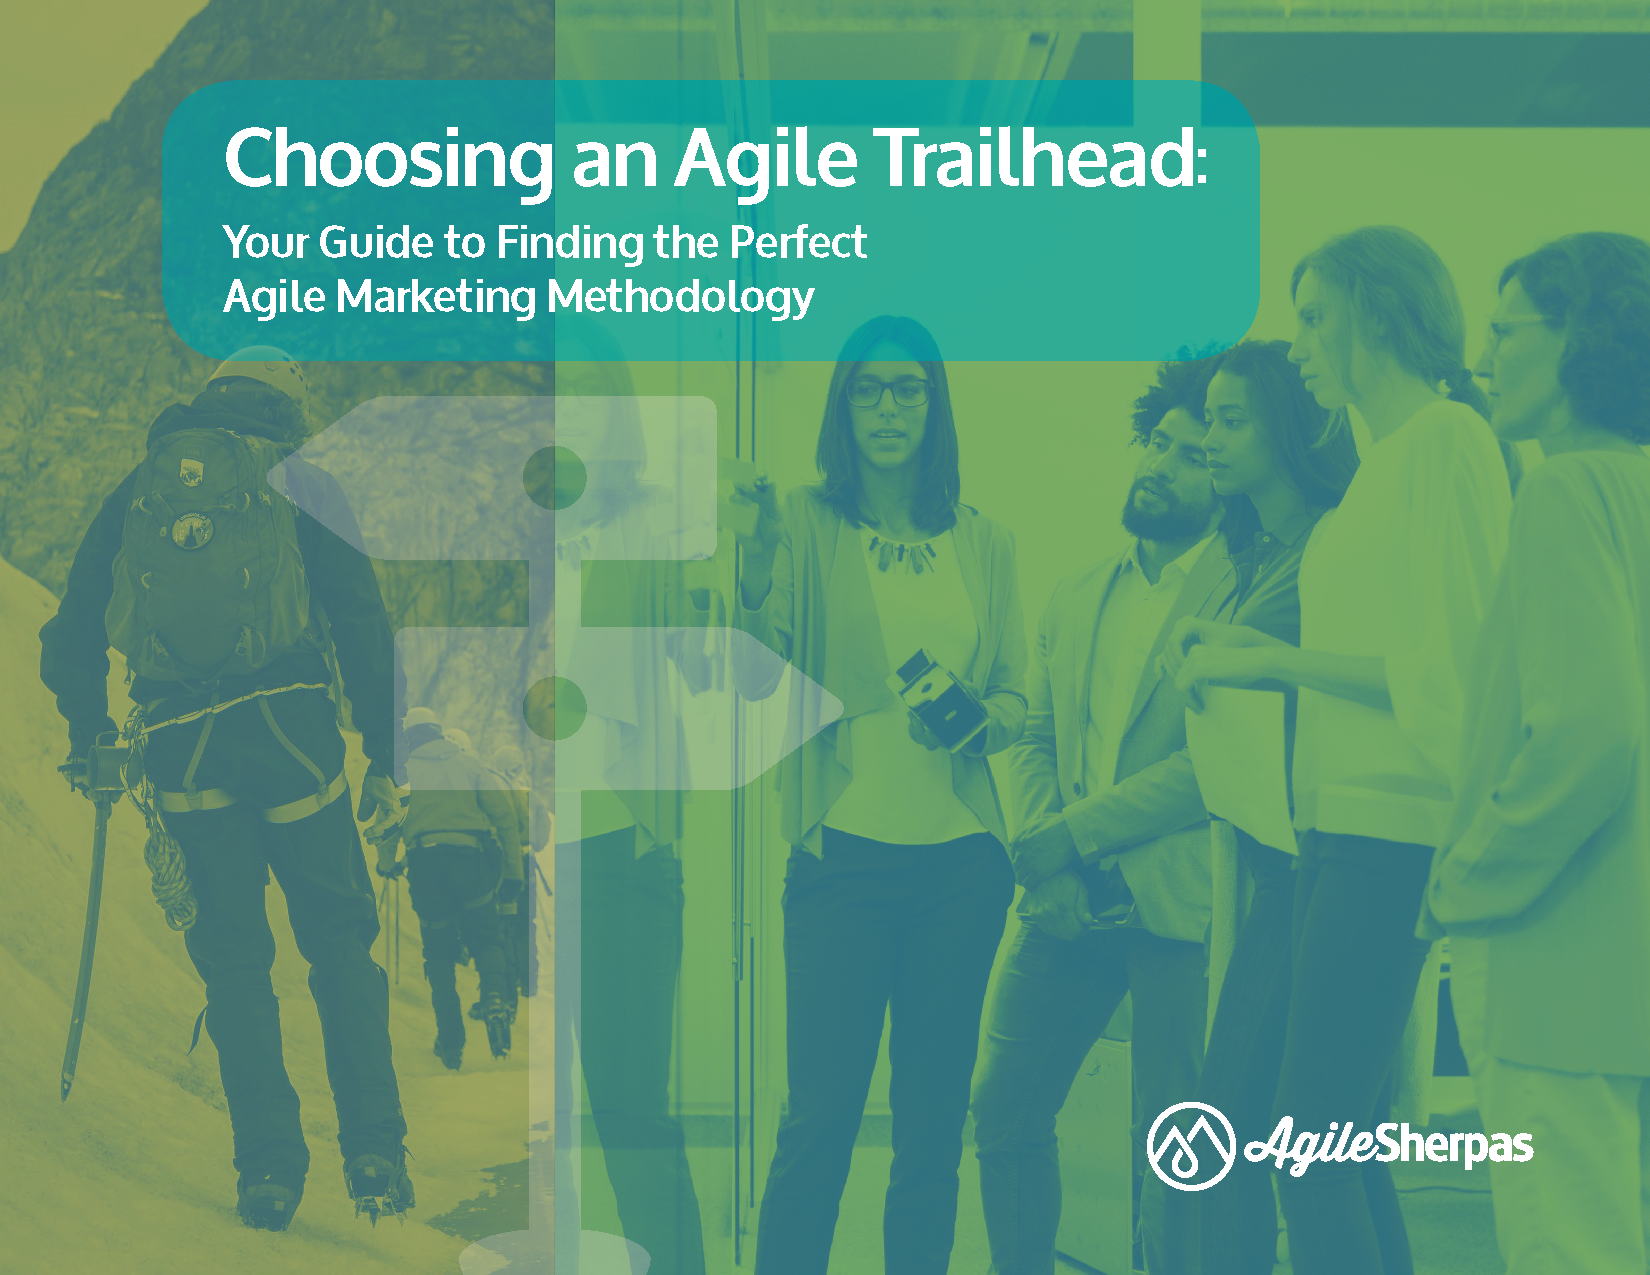 Choosing an Agile Trailhead: Your Guide to Finding the Perfect Agile Marketing Methodology